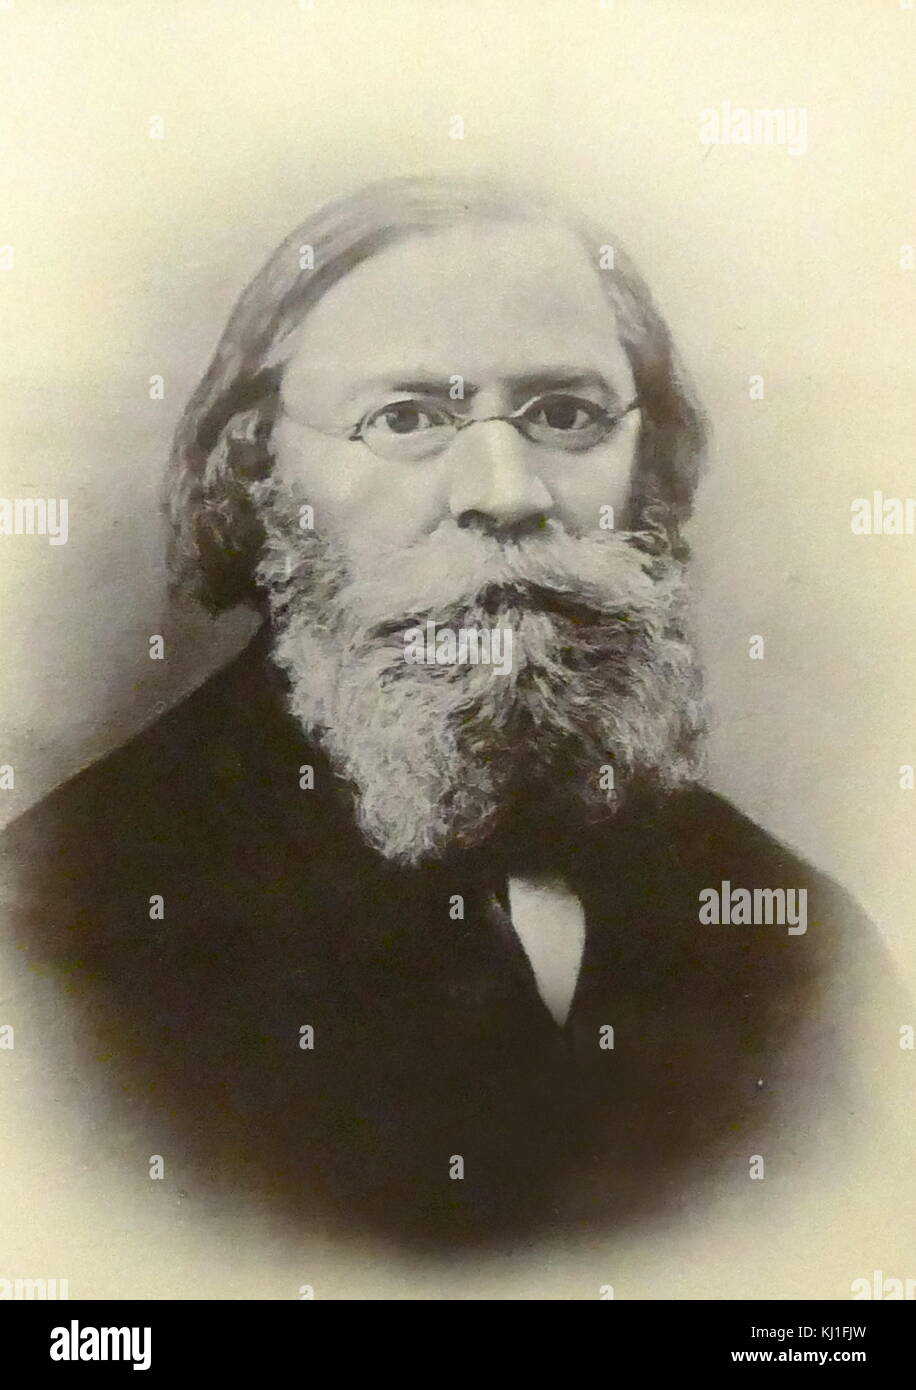 Lavrov Petrovich (1823 -1900) sociologist, philosopher, writer, revolutionary. One of the ideologists of populism. - Stock Image